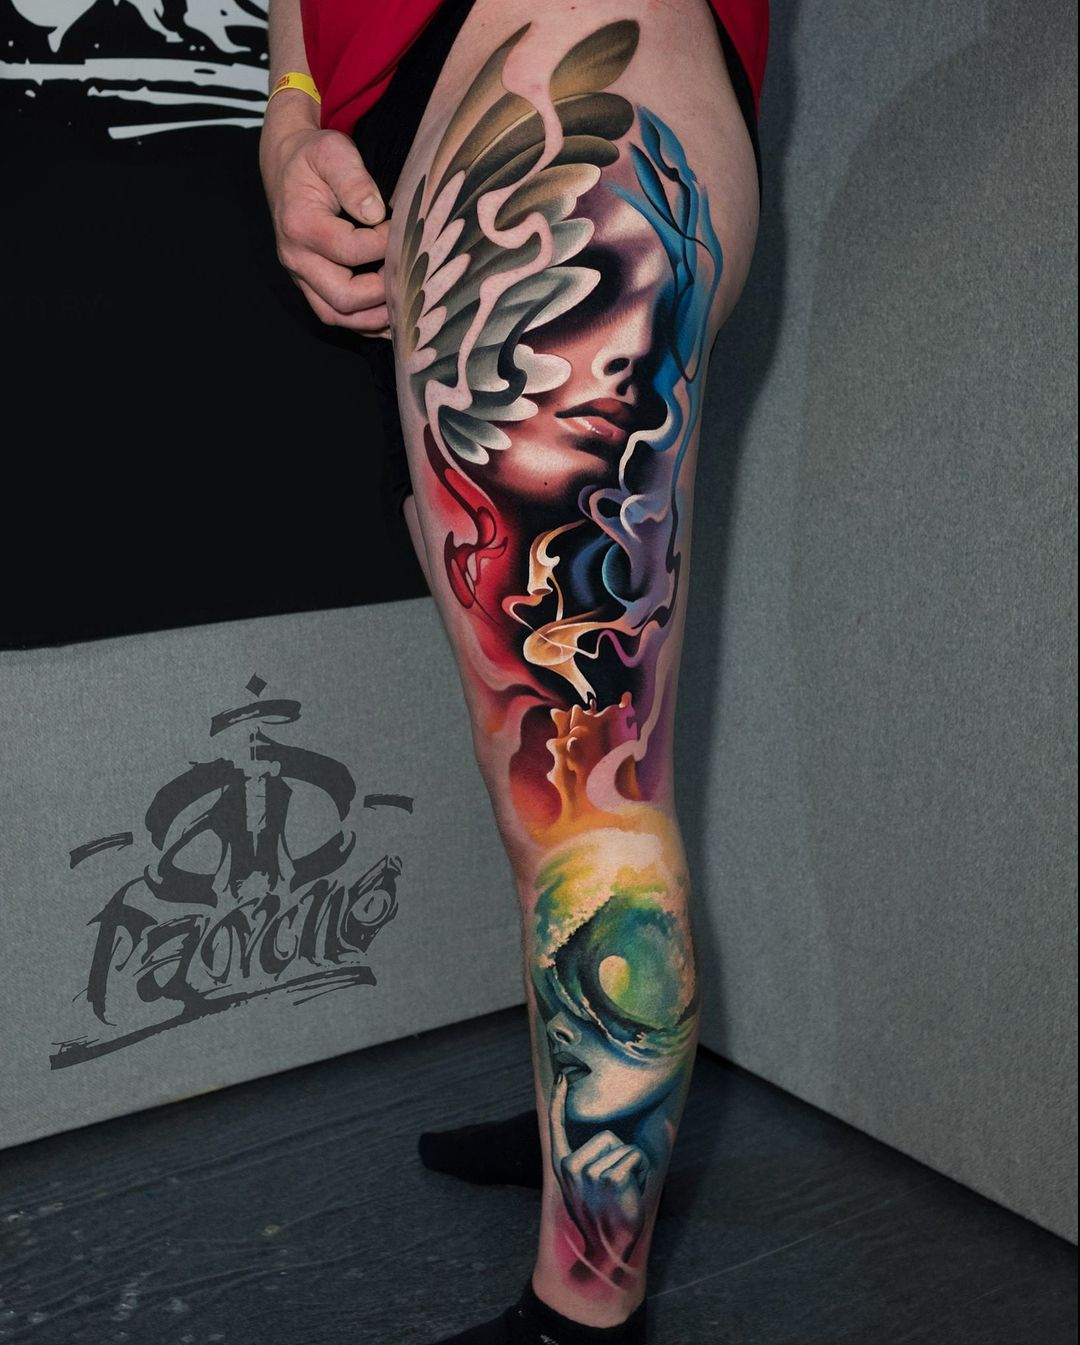 Realistic tattoo by A.D. Pancho Leg sleeve tattoo